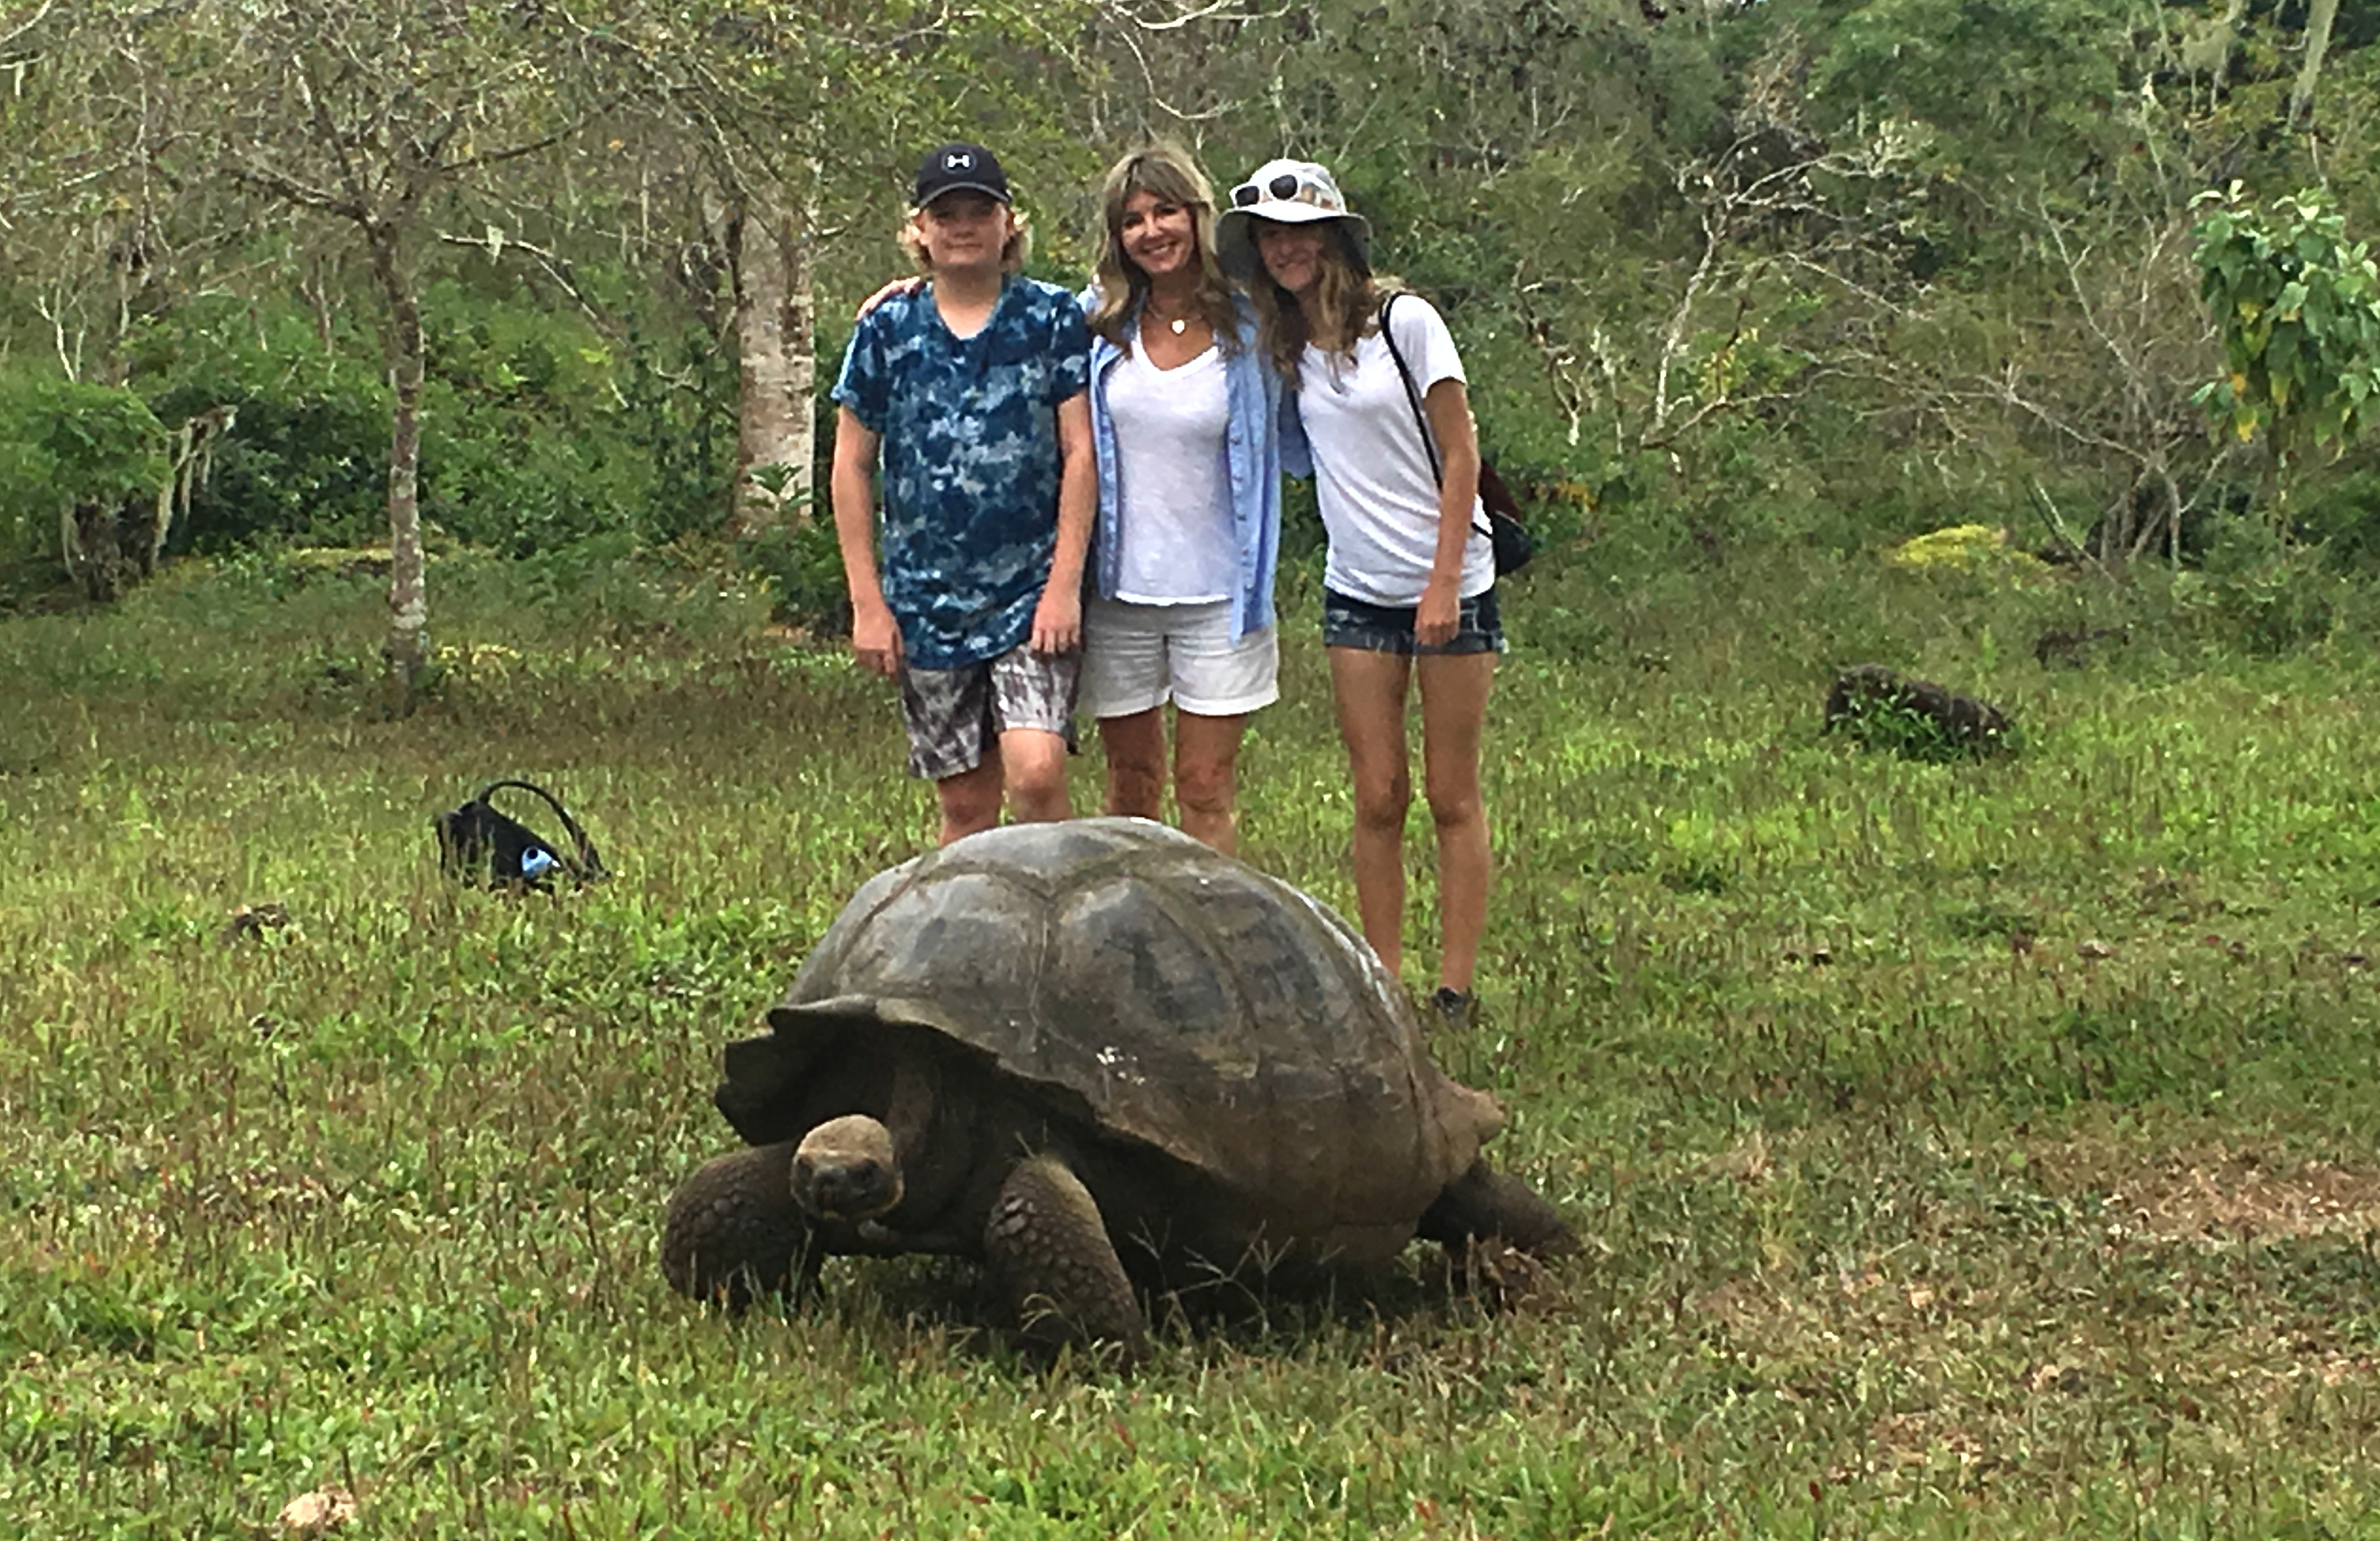 TURTLE POWER. Yeomans and her children visit the Galapagos Islands. Photo courtesy of Brenda Lynne Yeomans.